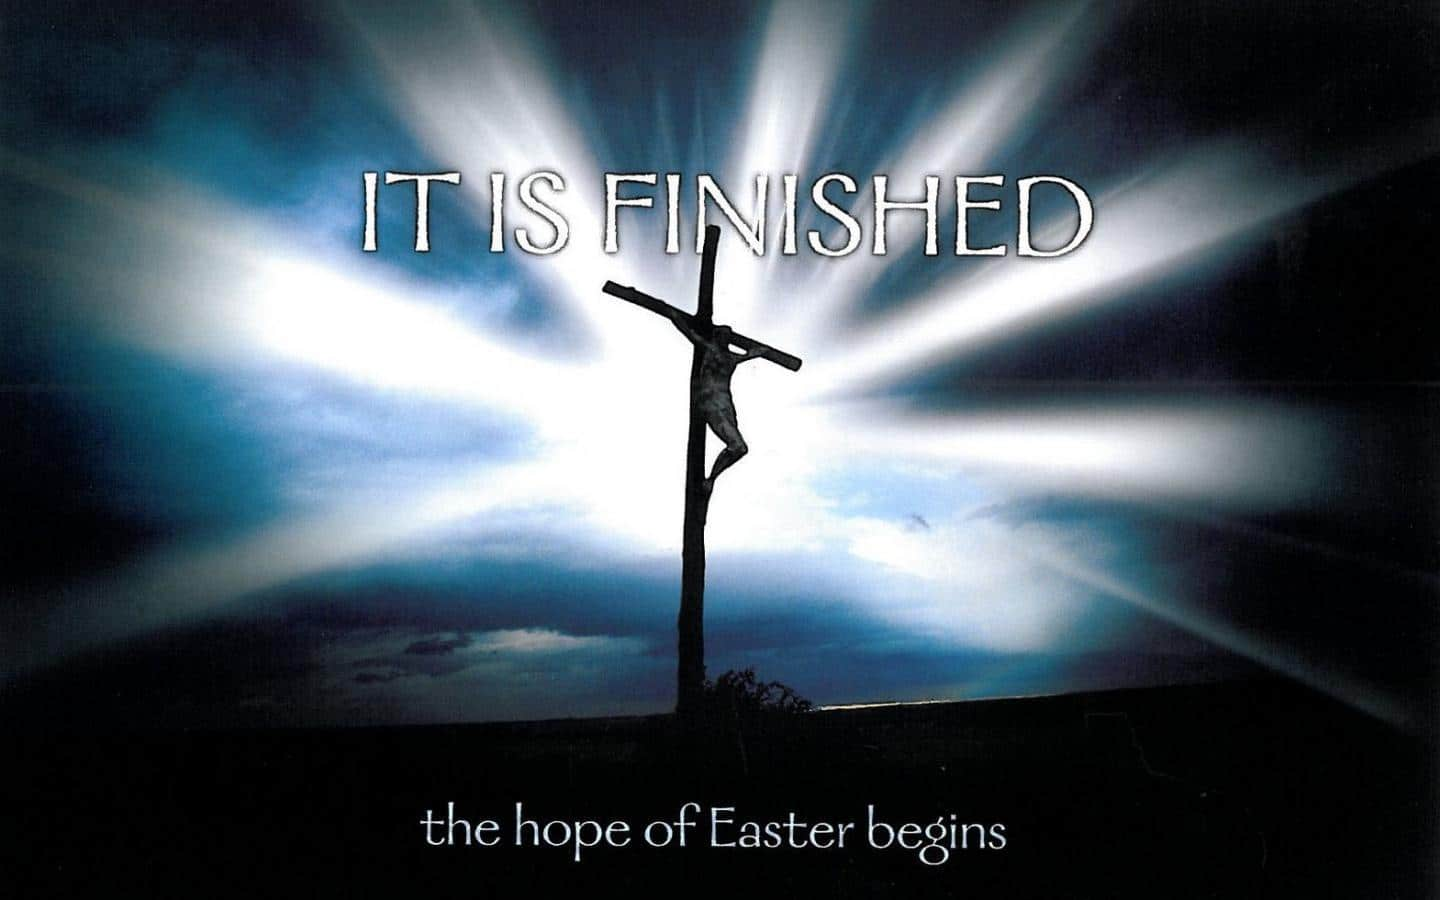 HD Images of Good Friday Sayings